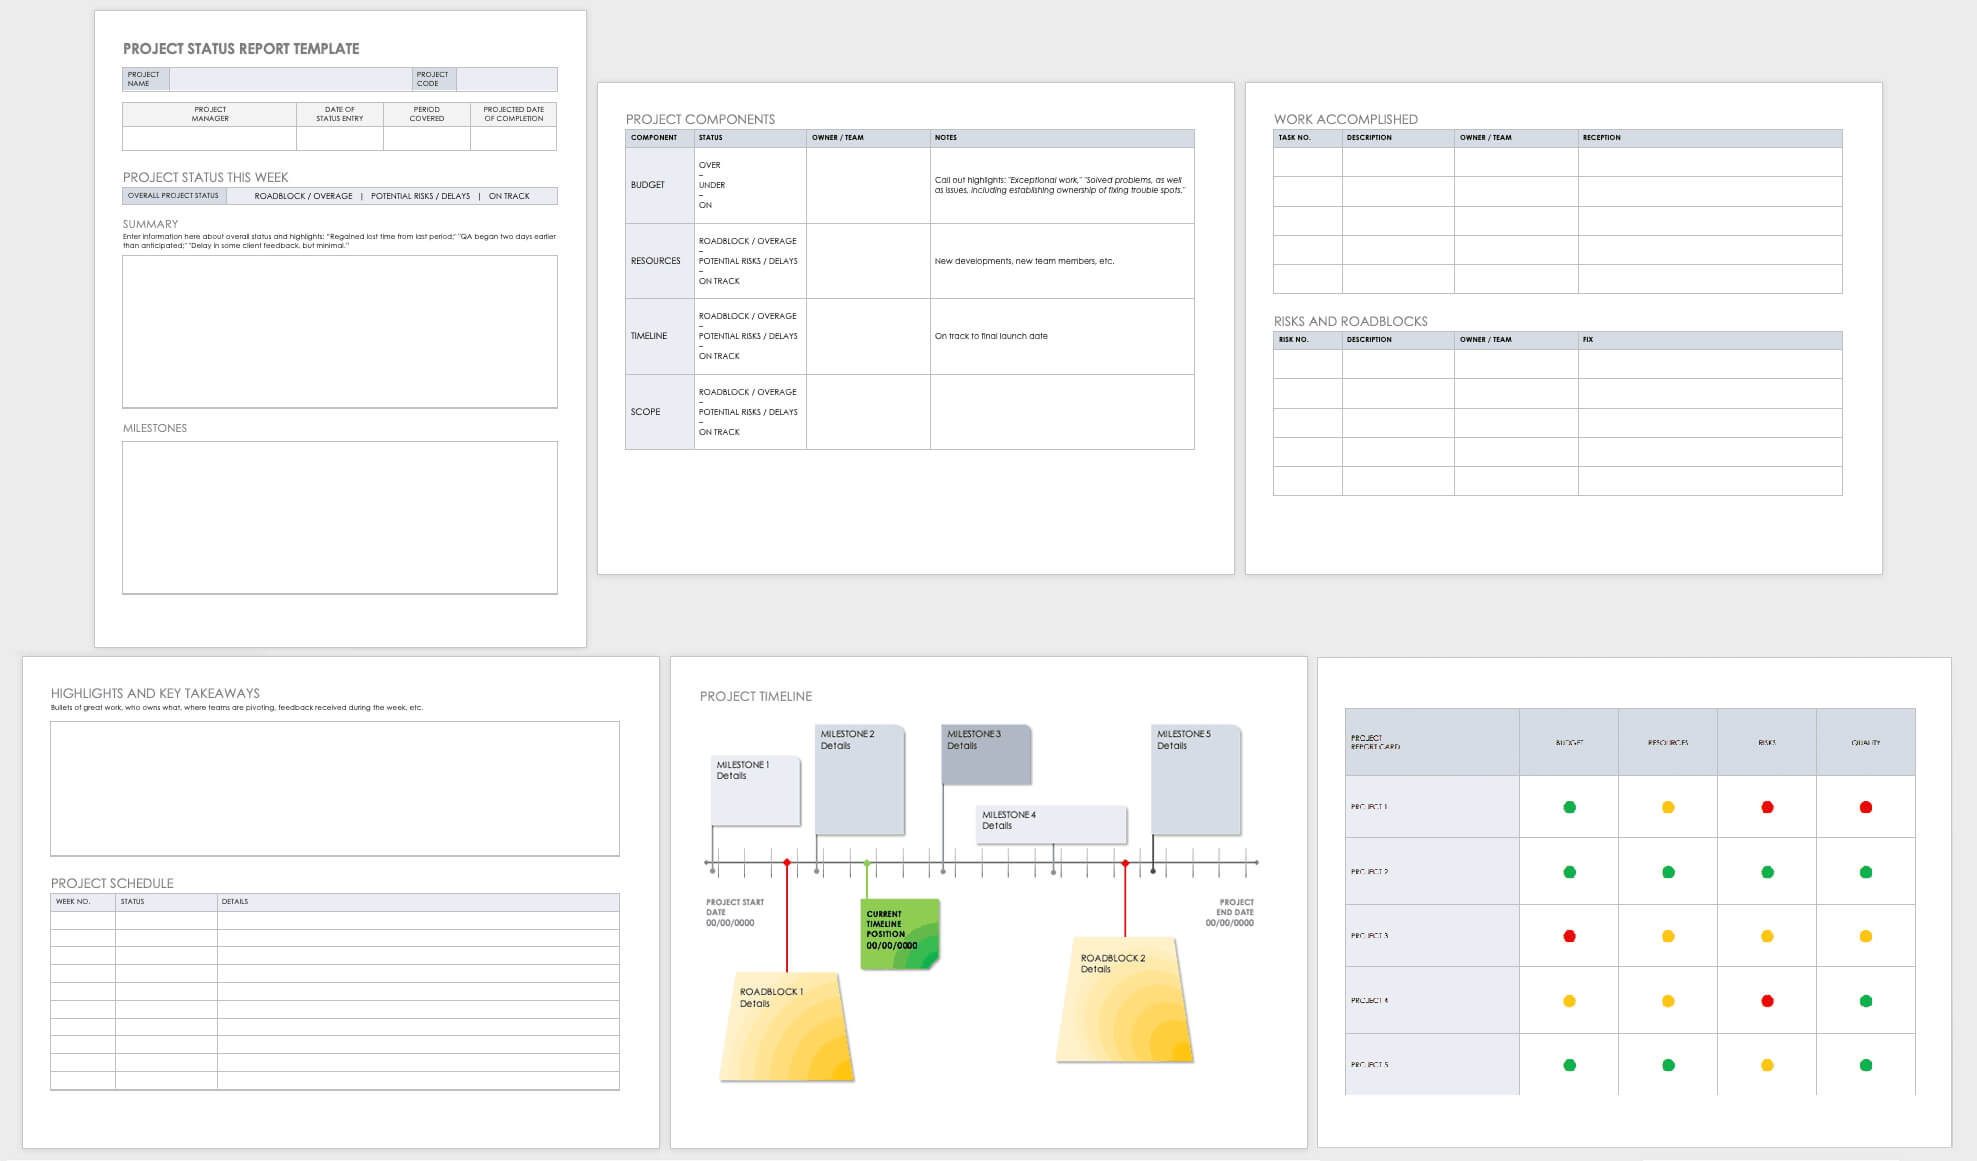 Free Project Report Templates | Smartsheet Pertaining To Check Out Report Template